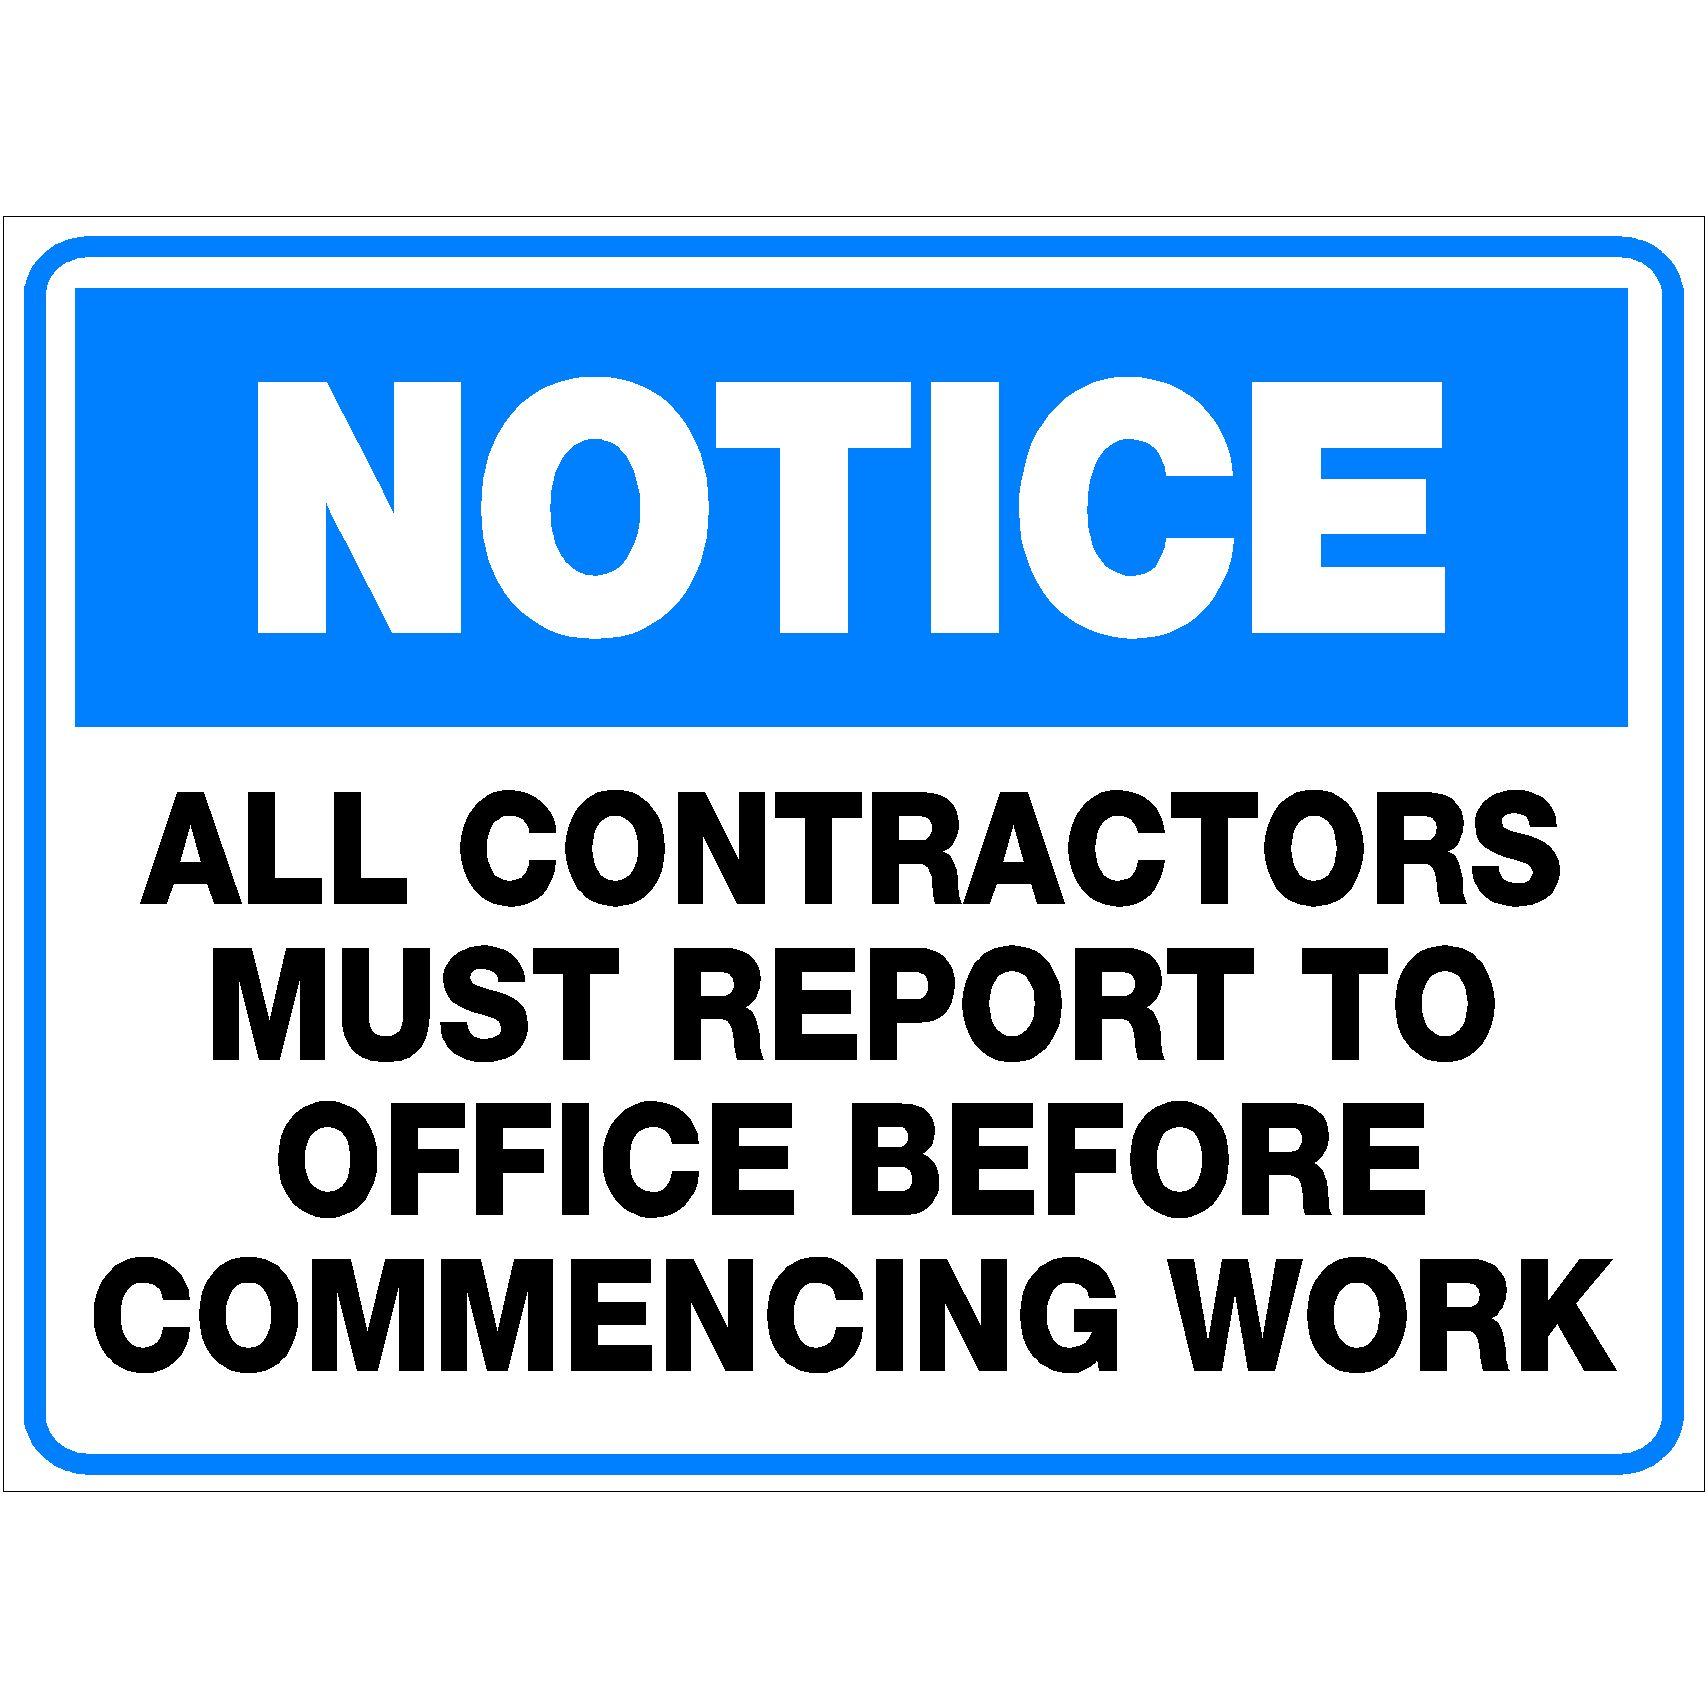 Notice All Contractors Must Report To Office Before Commencing Work